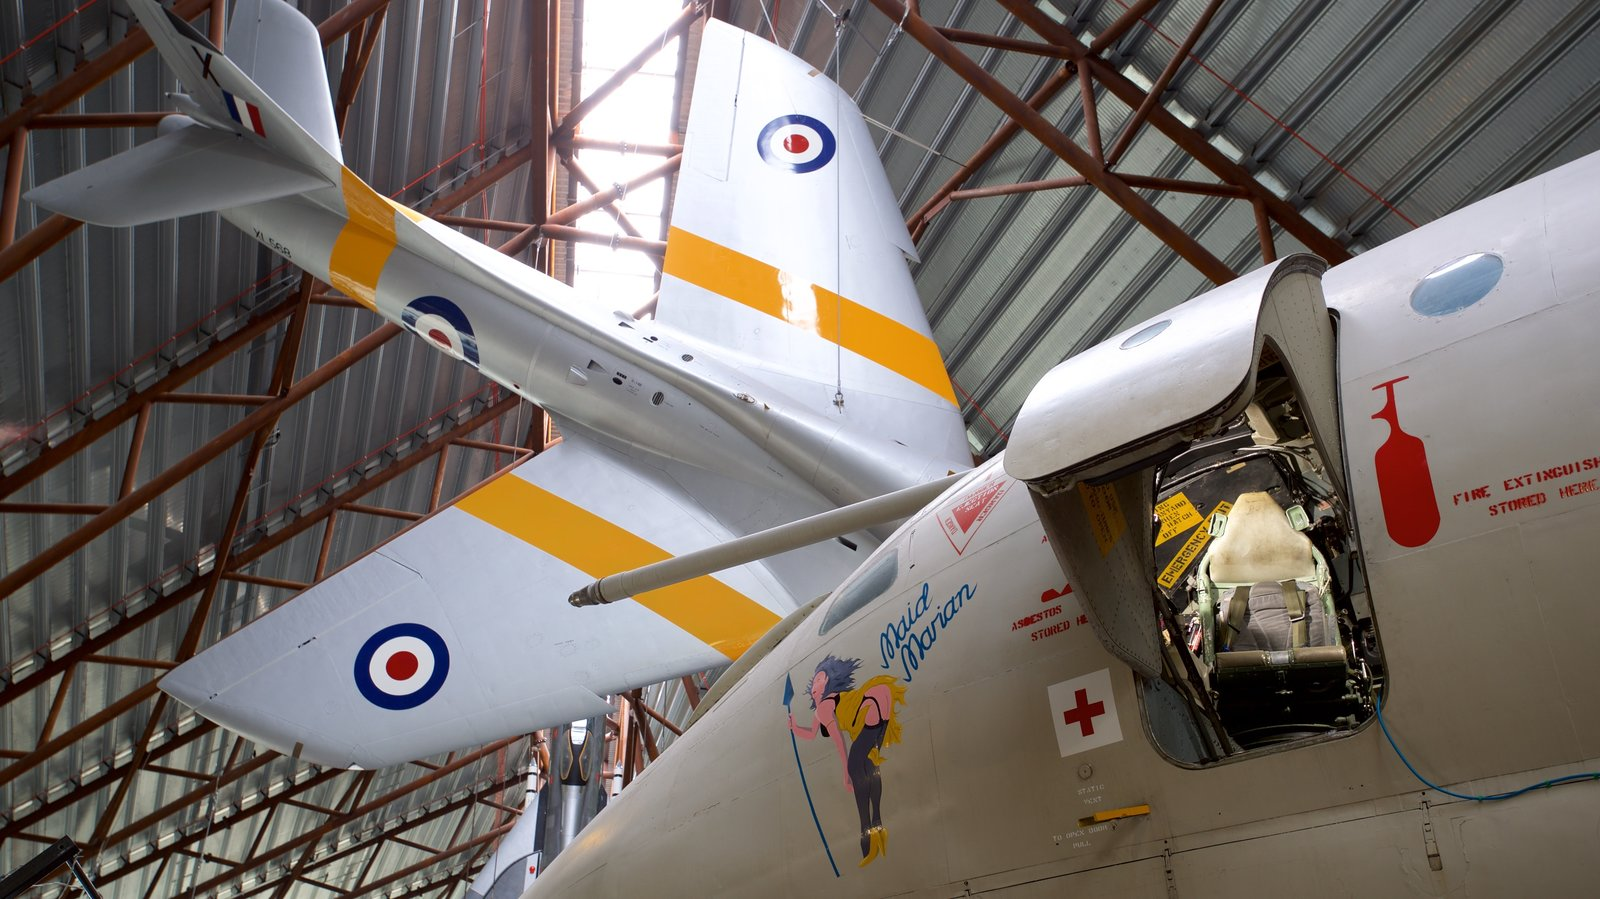 Cosford Royal Air Force Museum showing aircraft, interior views and heritage elements